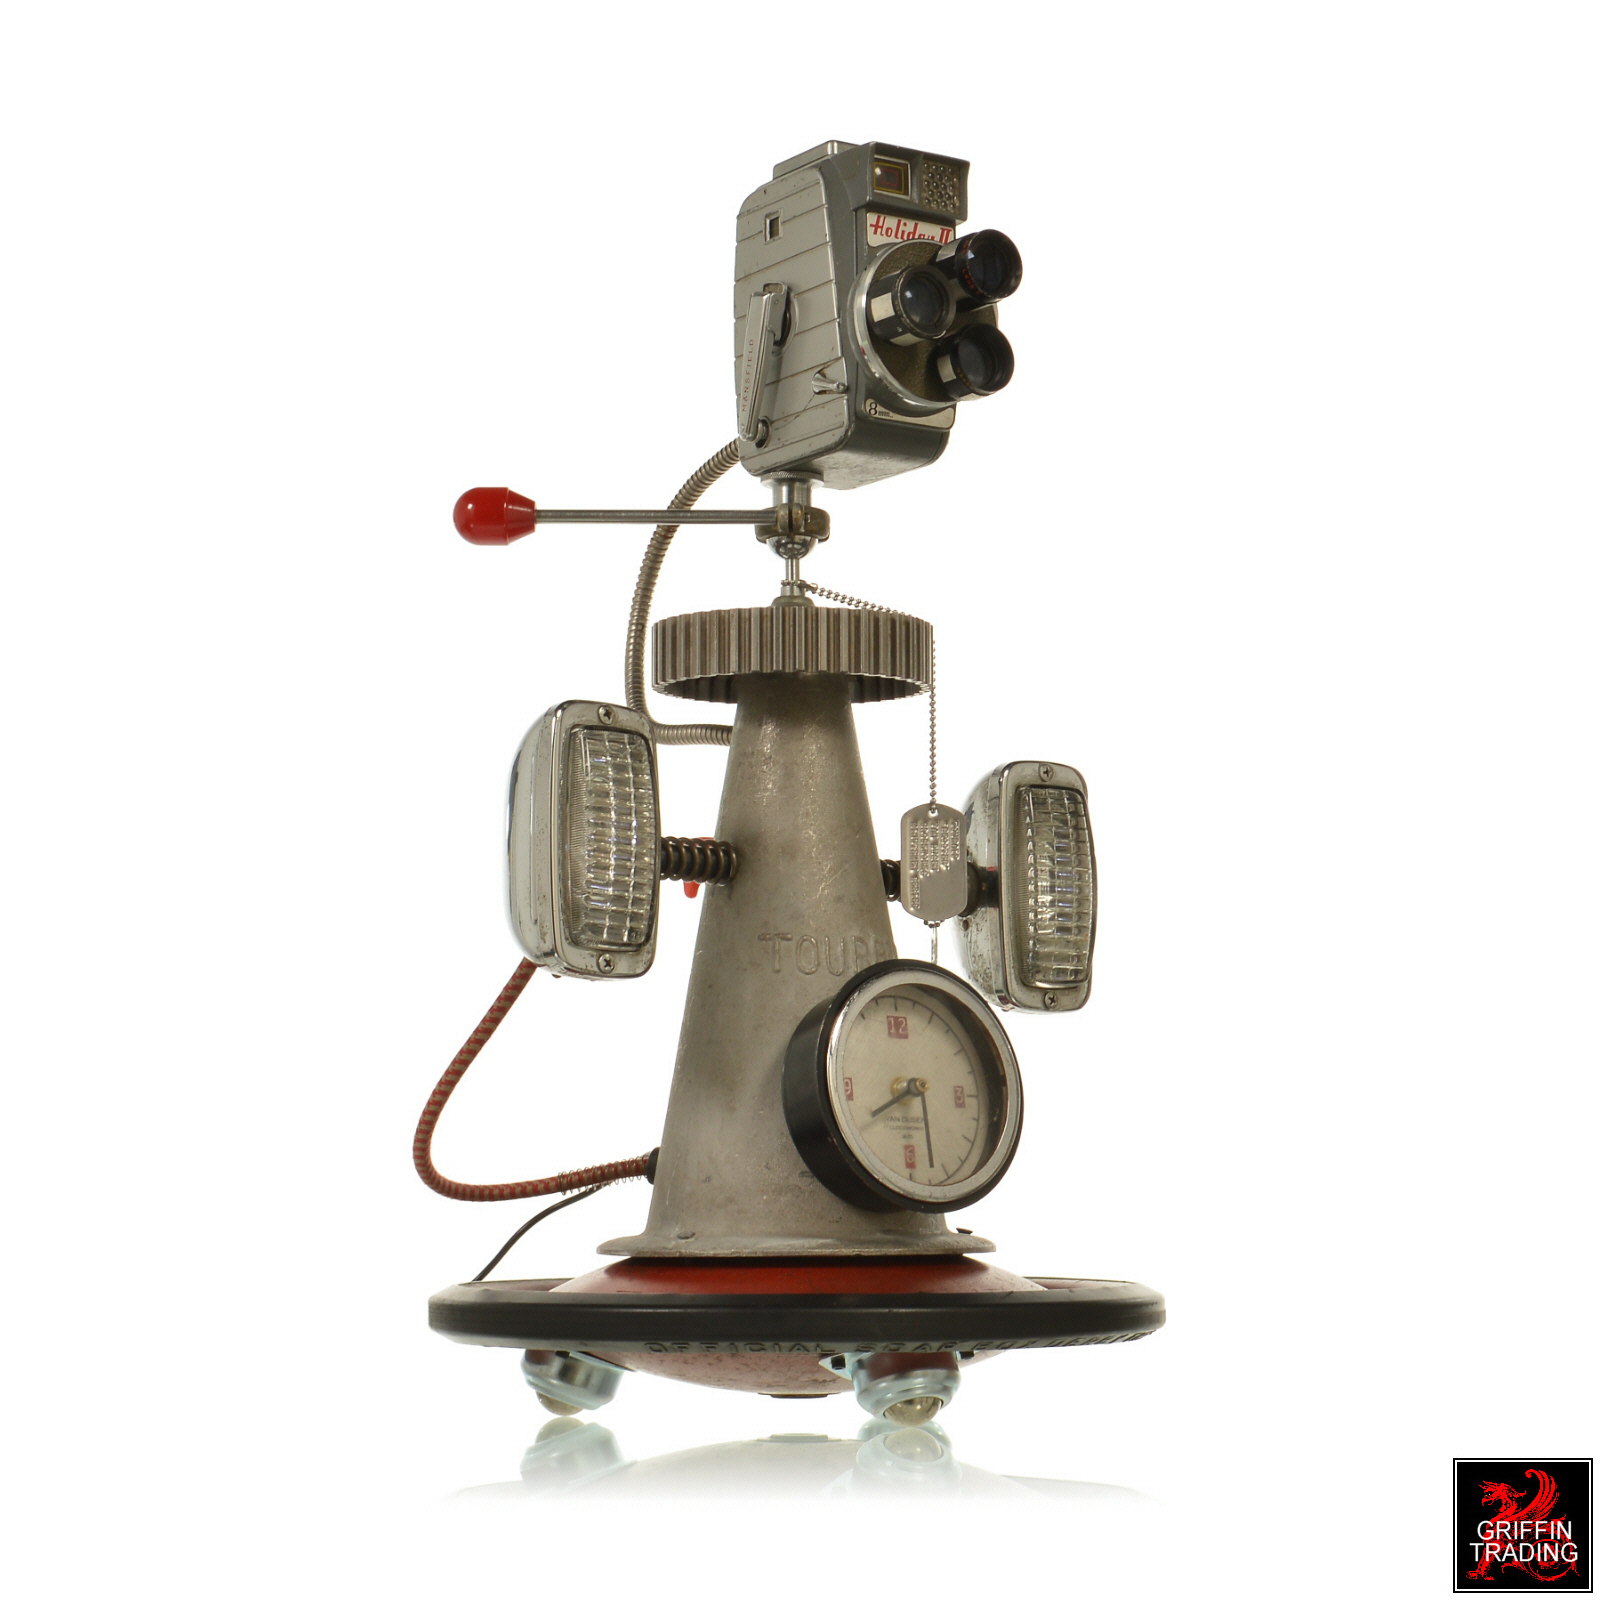 TOURAID The Robot by Van Dusen Designworks